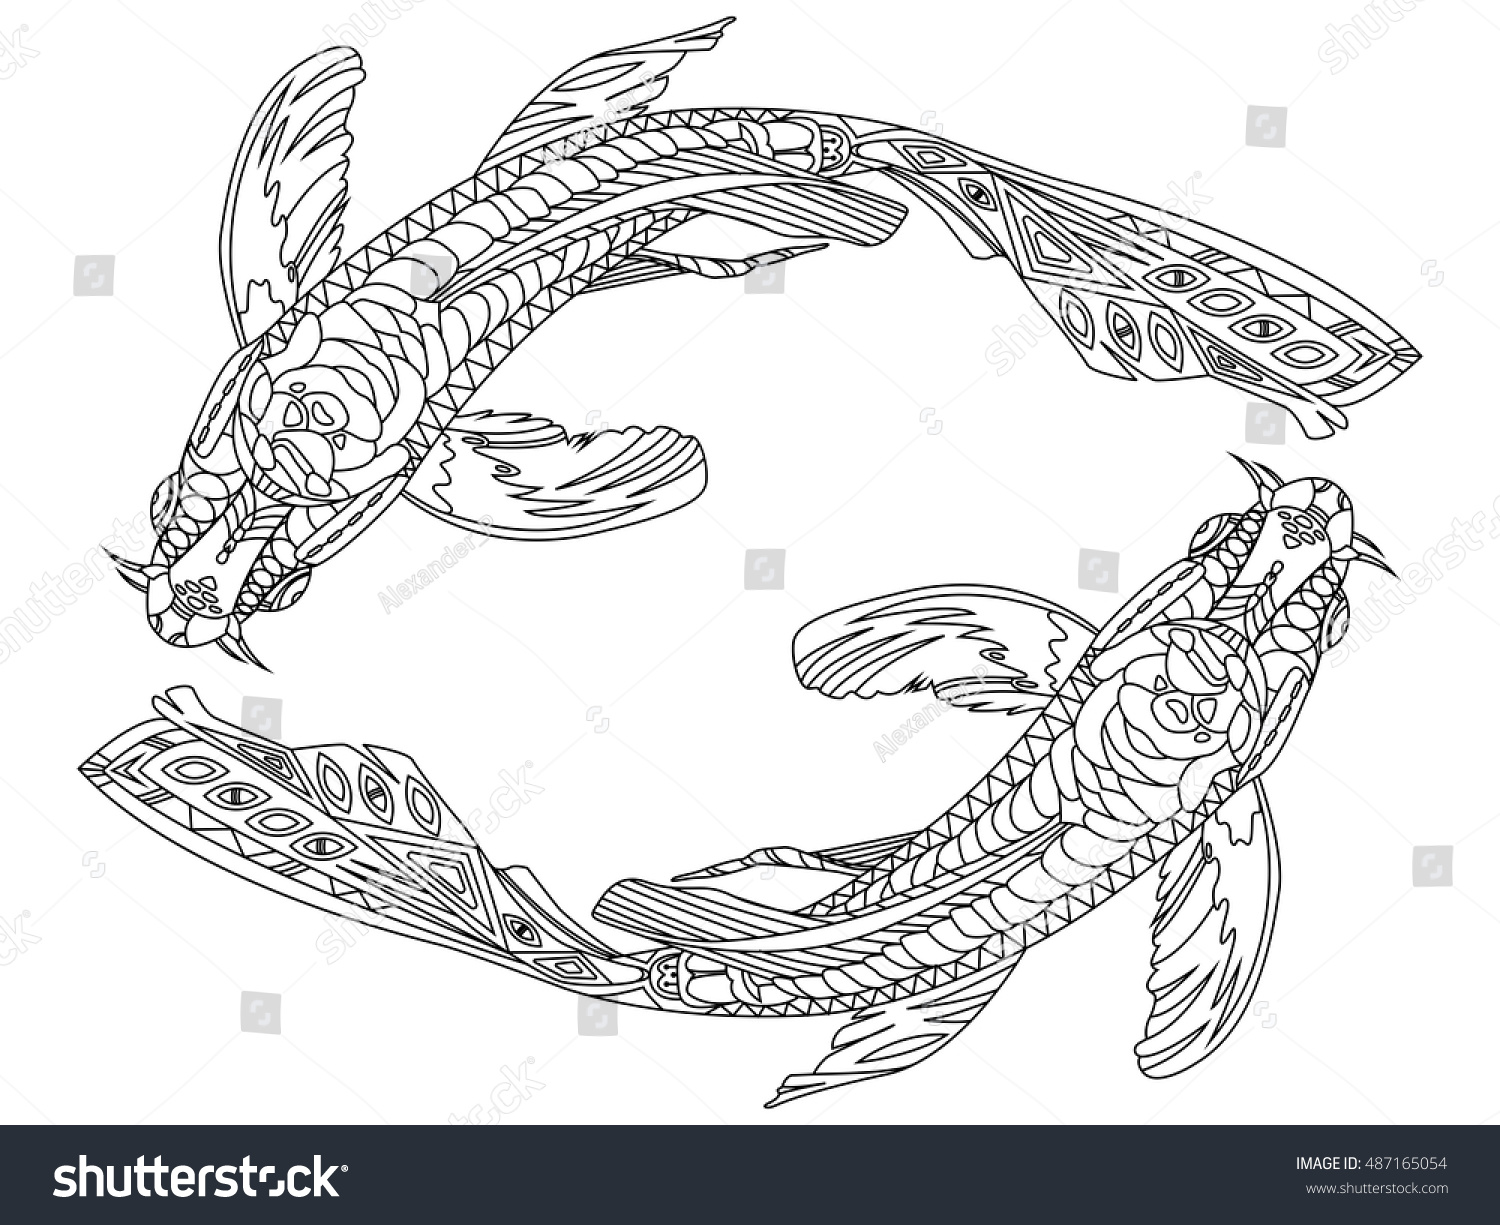 Koi Carp Fish Coloring Book For Adults Vector Illustration Zentangle Style Black And White